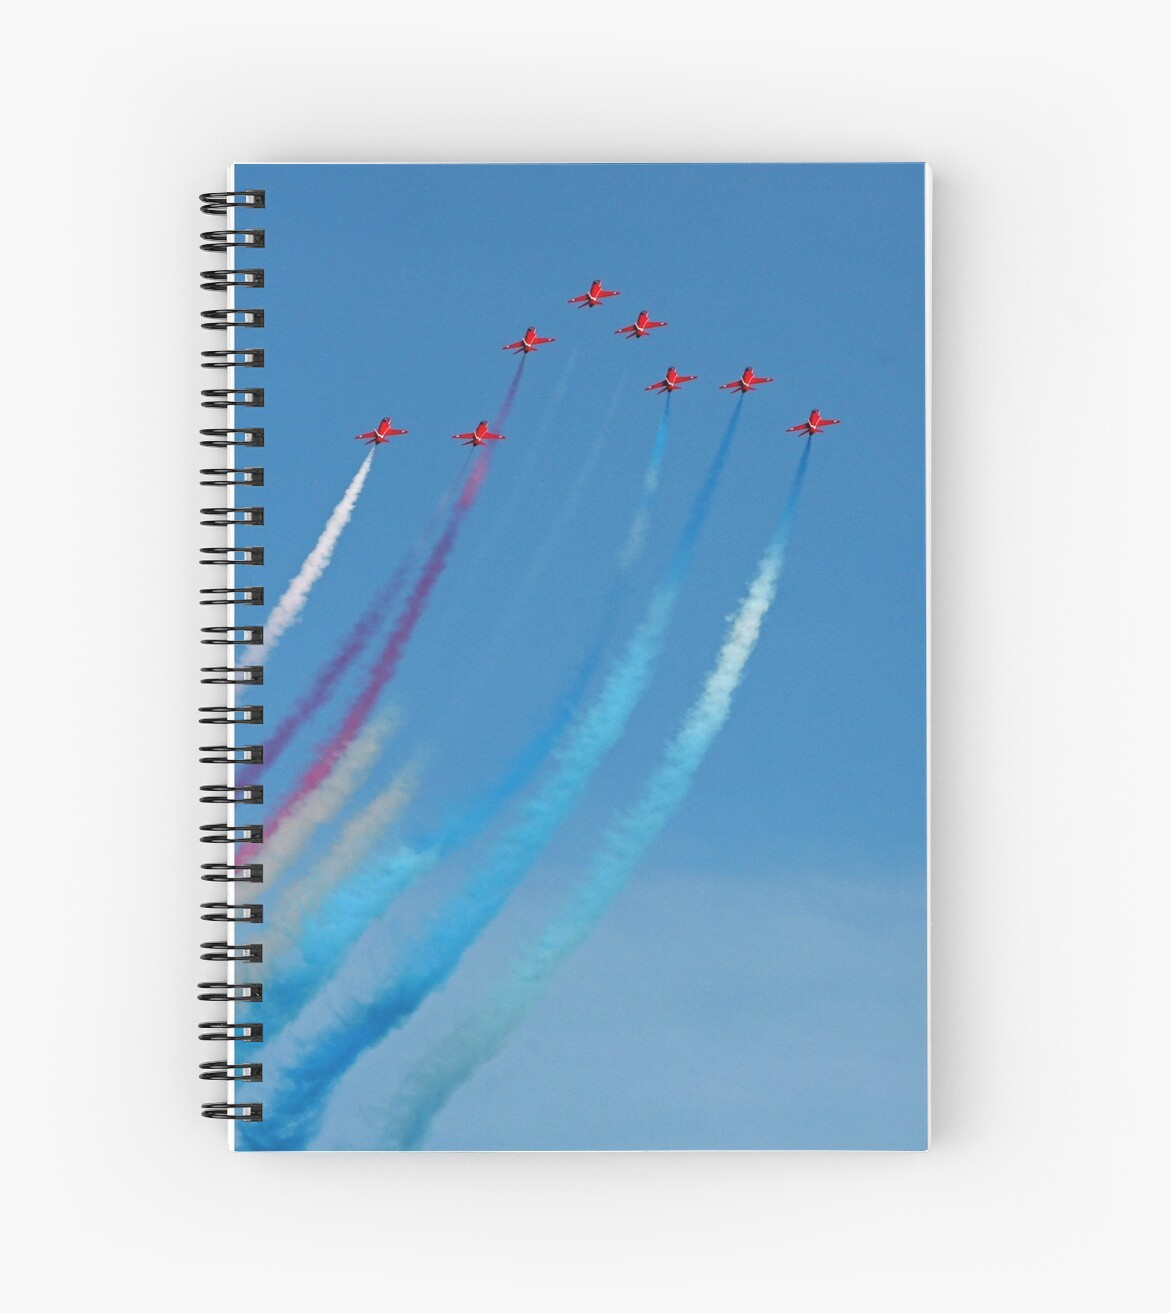 The Red Arrows arrow formation by Tony Steel